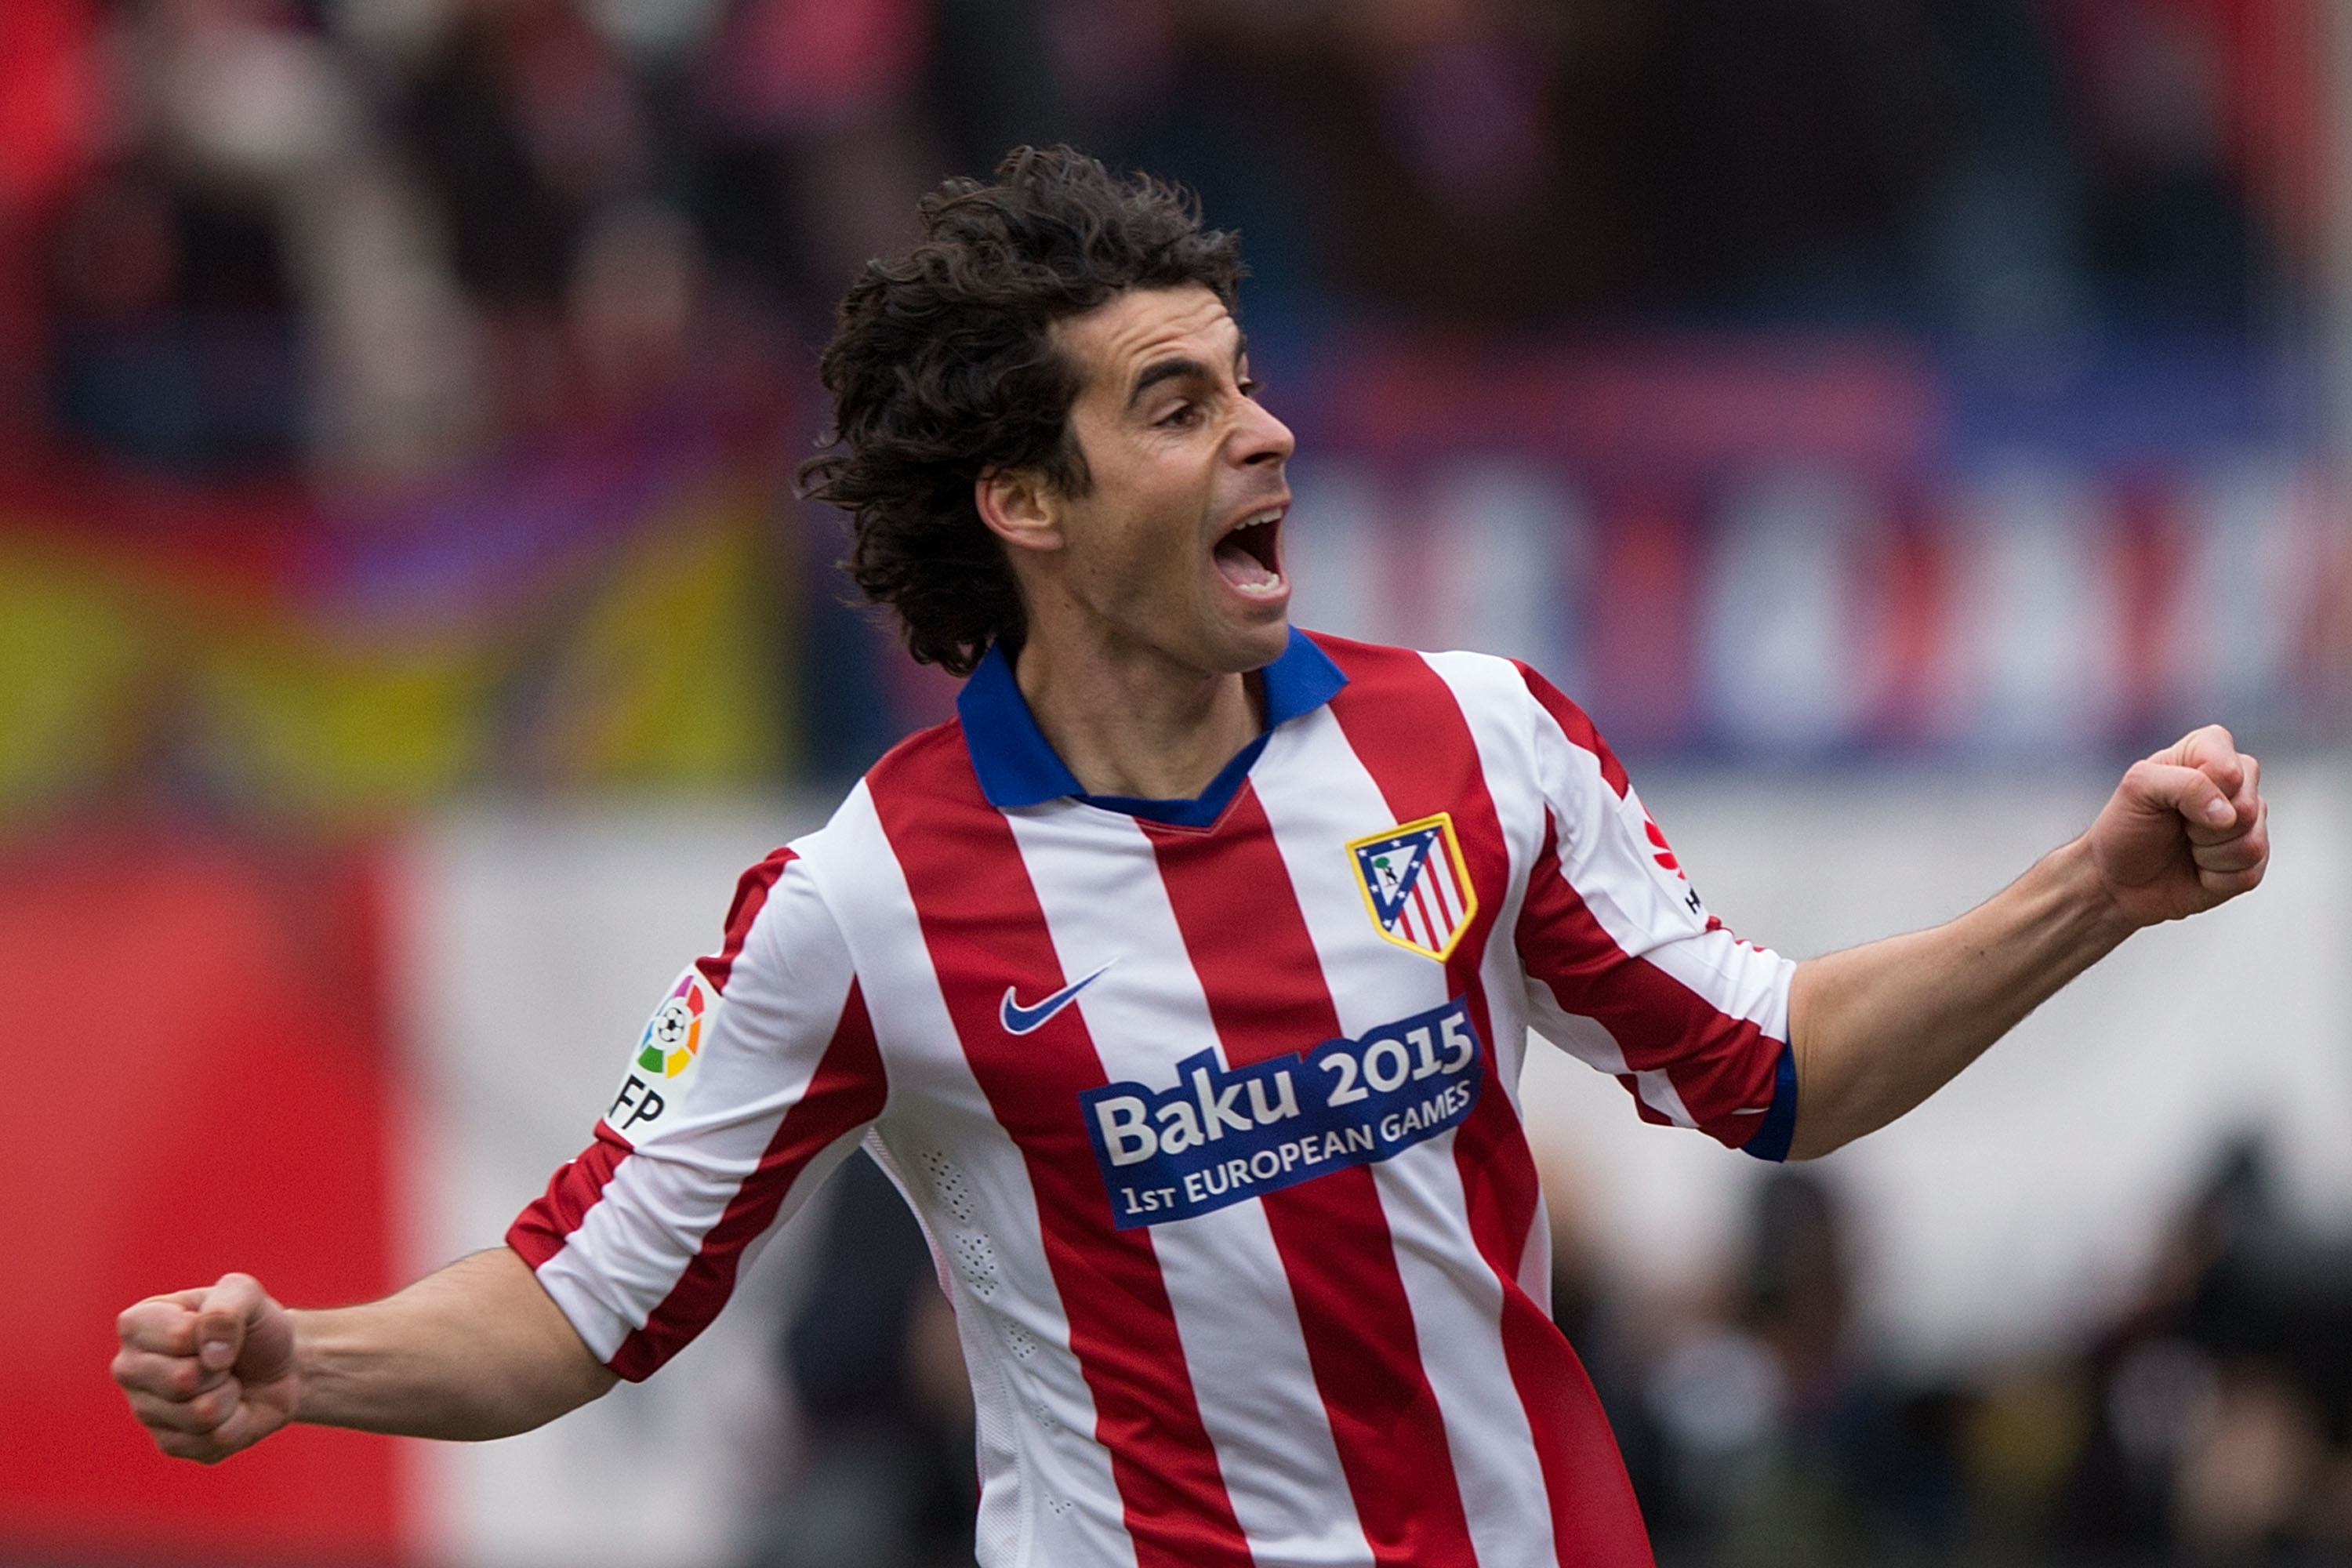 MADRID, SPAIN - FEBRUARY 07: Tiago Mendes of Atletico de Madrid celebrates scoring their opening goal during the La Liga match between Club Atletico de Madrid and Real Madrid CF at Vicente Calderon Stadium on February 7, 2015 in Madrid, Spain. (Photo by Gonzalo Arroyo Moreno/Getty Images)